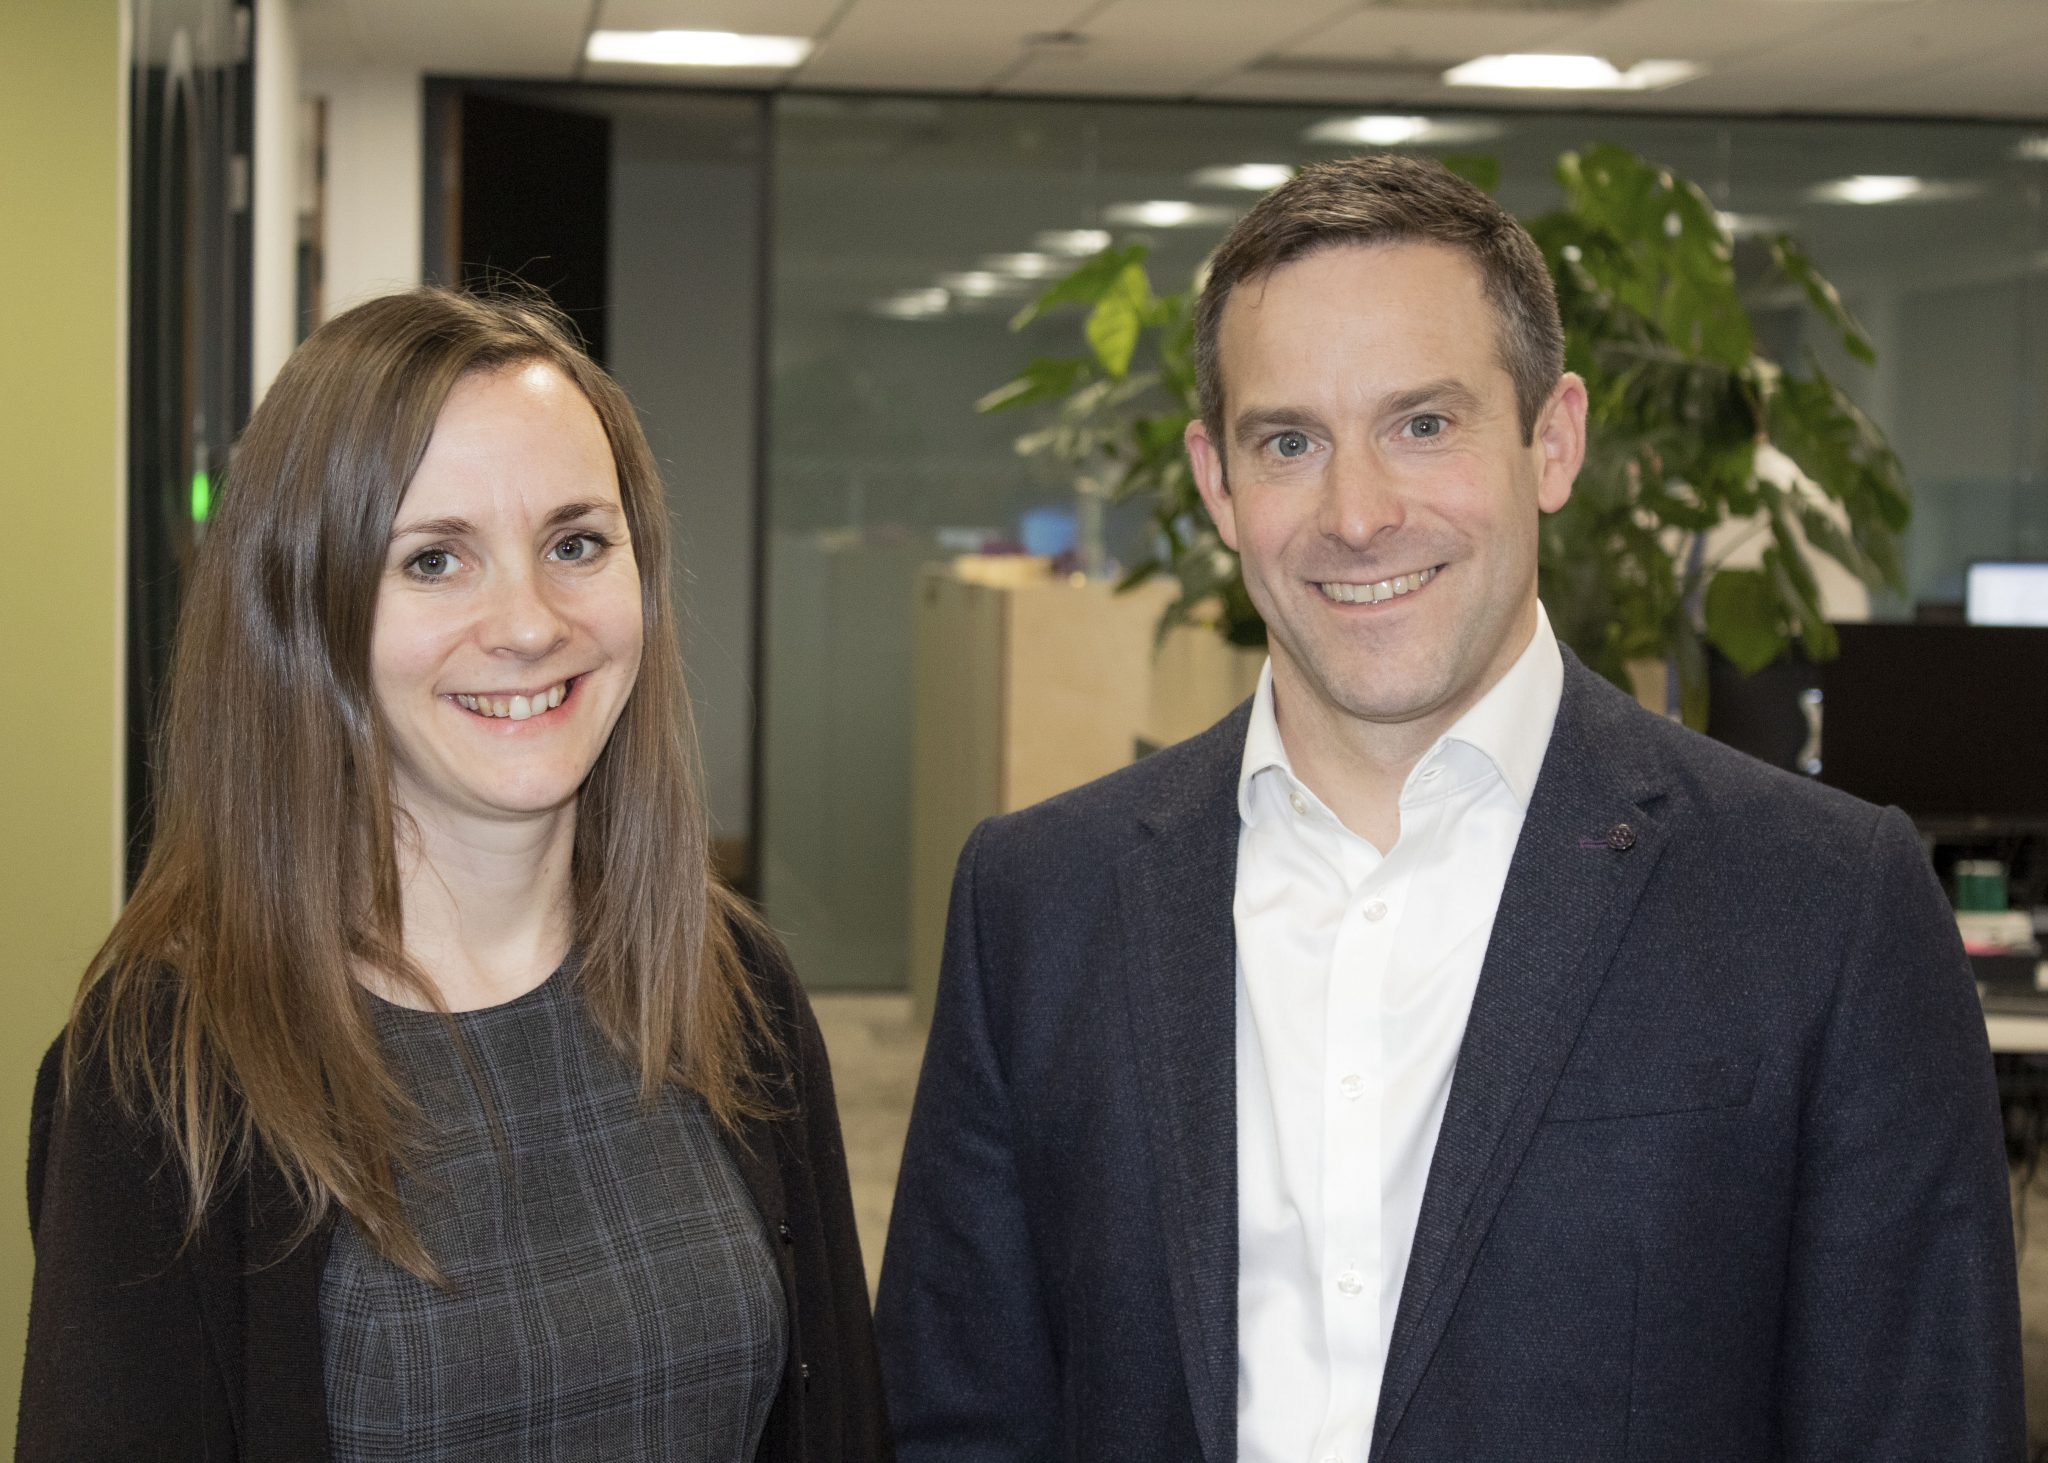 St Modwen Explands Midlands And North Team With Two New Appointents